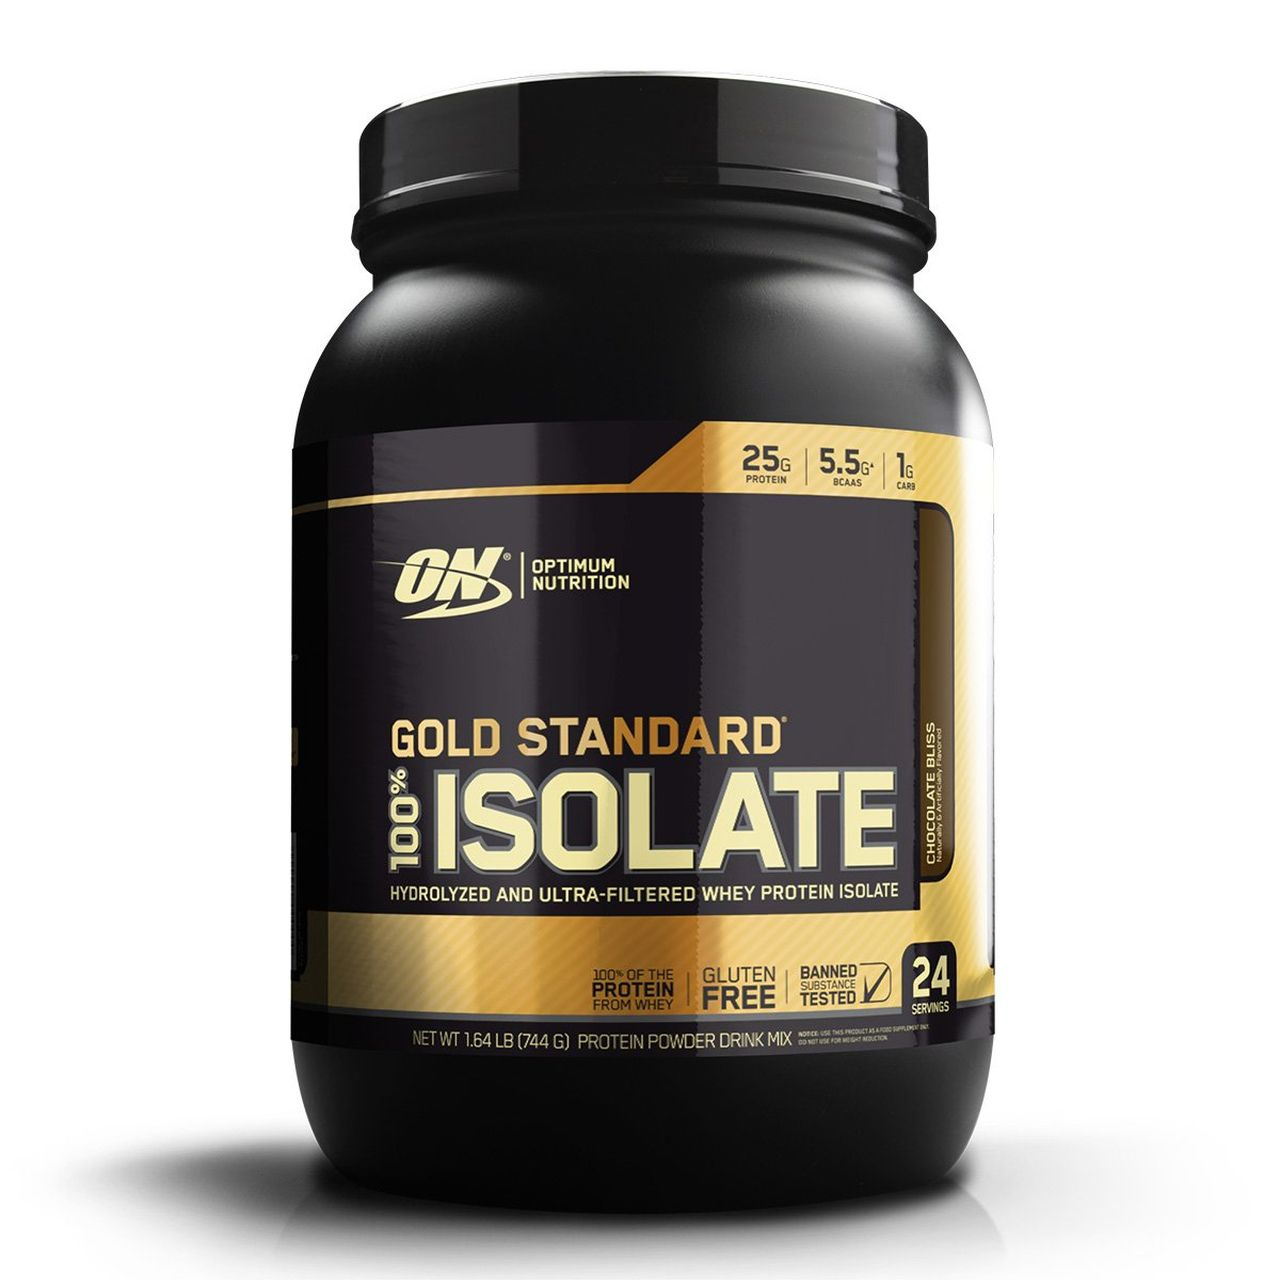 100% Isolate Gold Standard (744g/1.64lbs) - Optimum Nutrition